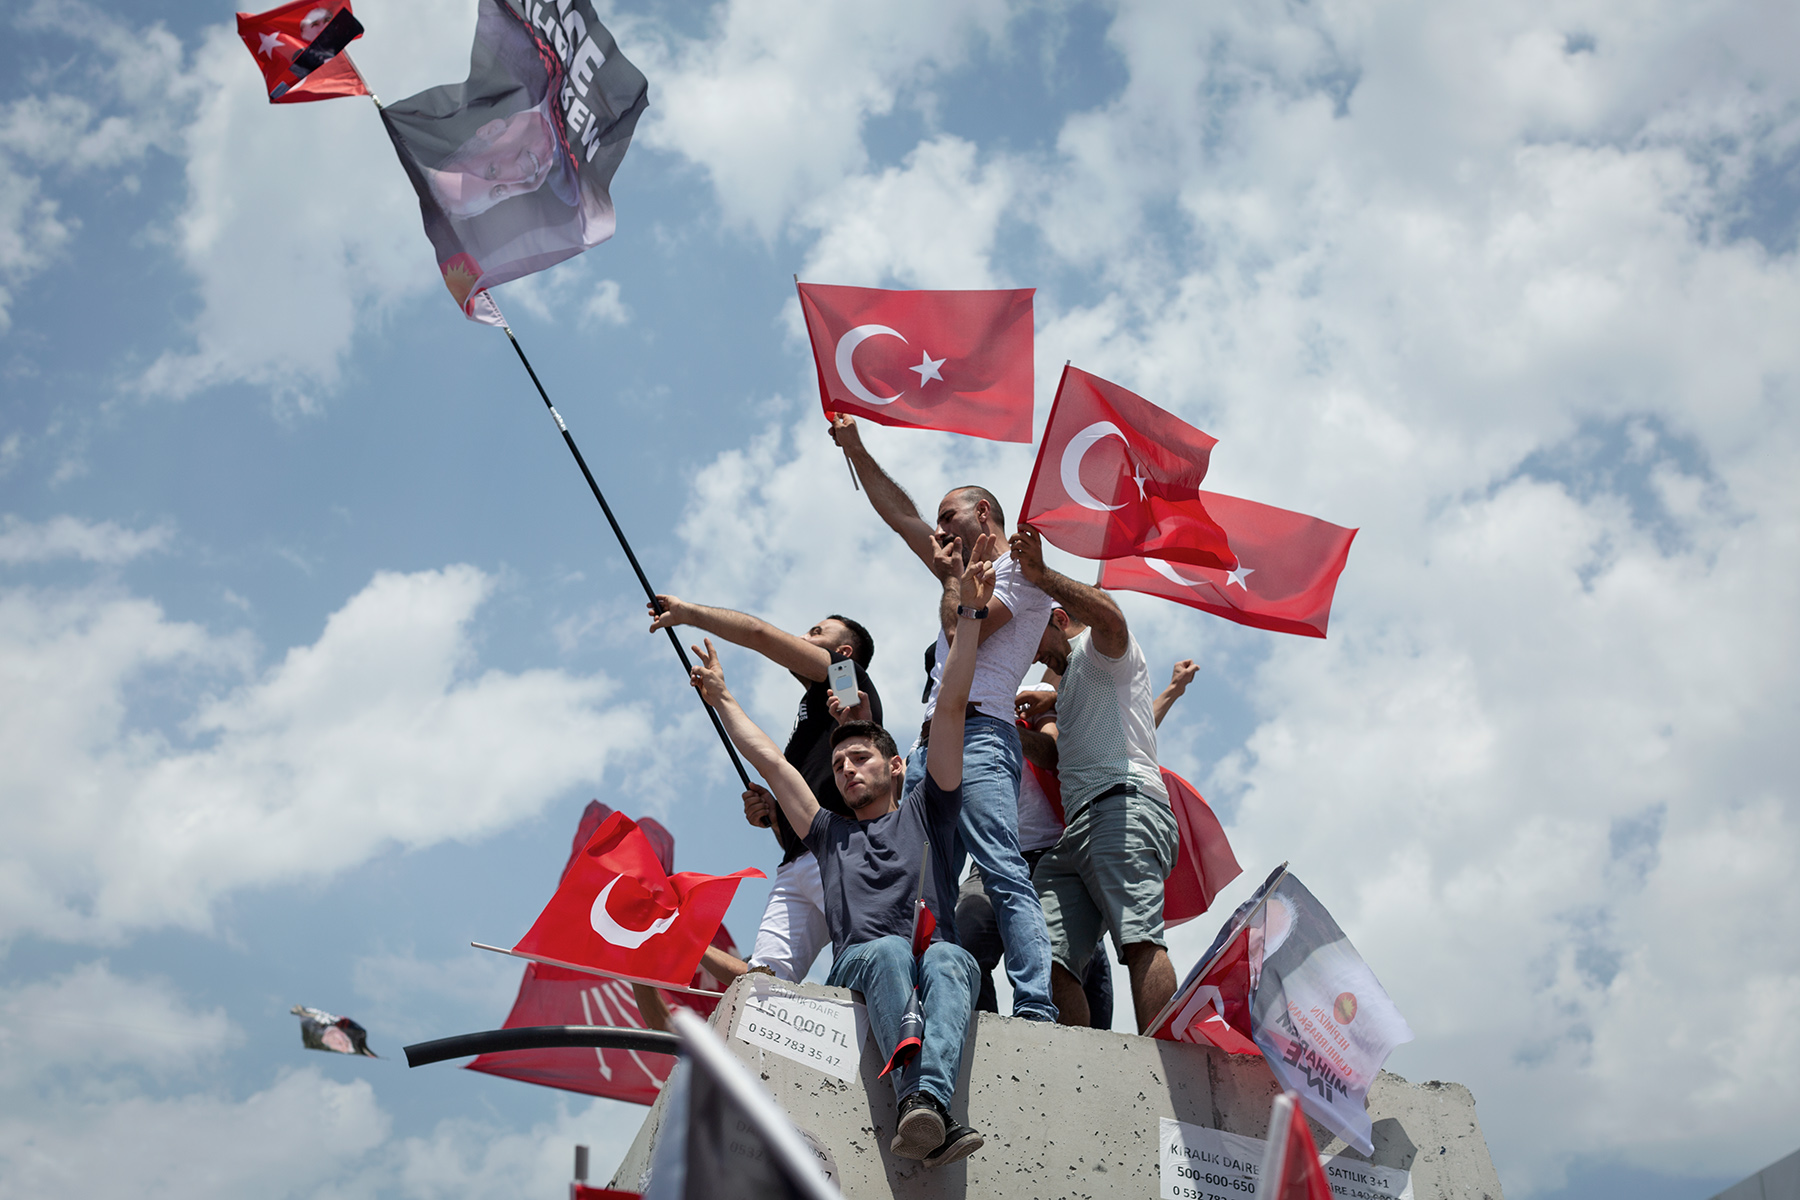 Supporters of the main opposition Republican People's Party (CHP) presidential runner Muharrem İnce wave flags during a small rally in Istanbul western suburbs on June 10, 2018